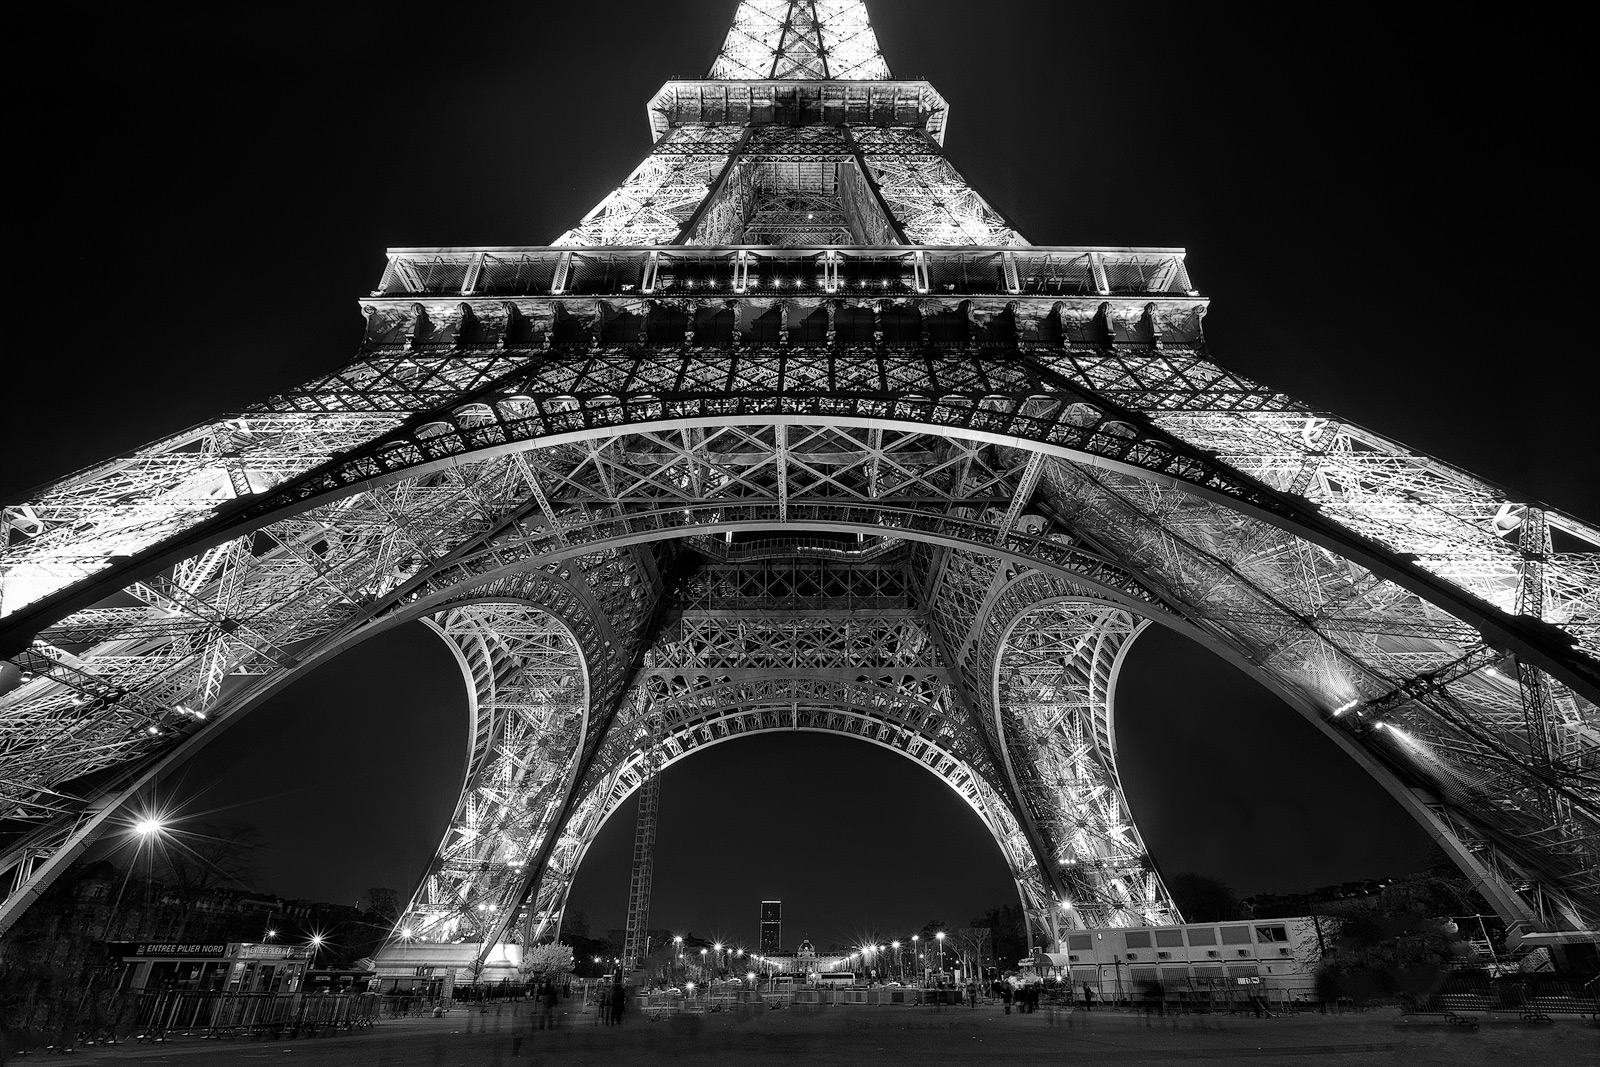 Black whiteblack and whitecity scapecityscapeeiffel tower